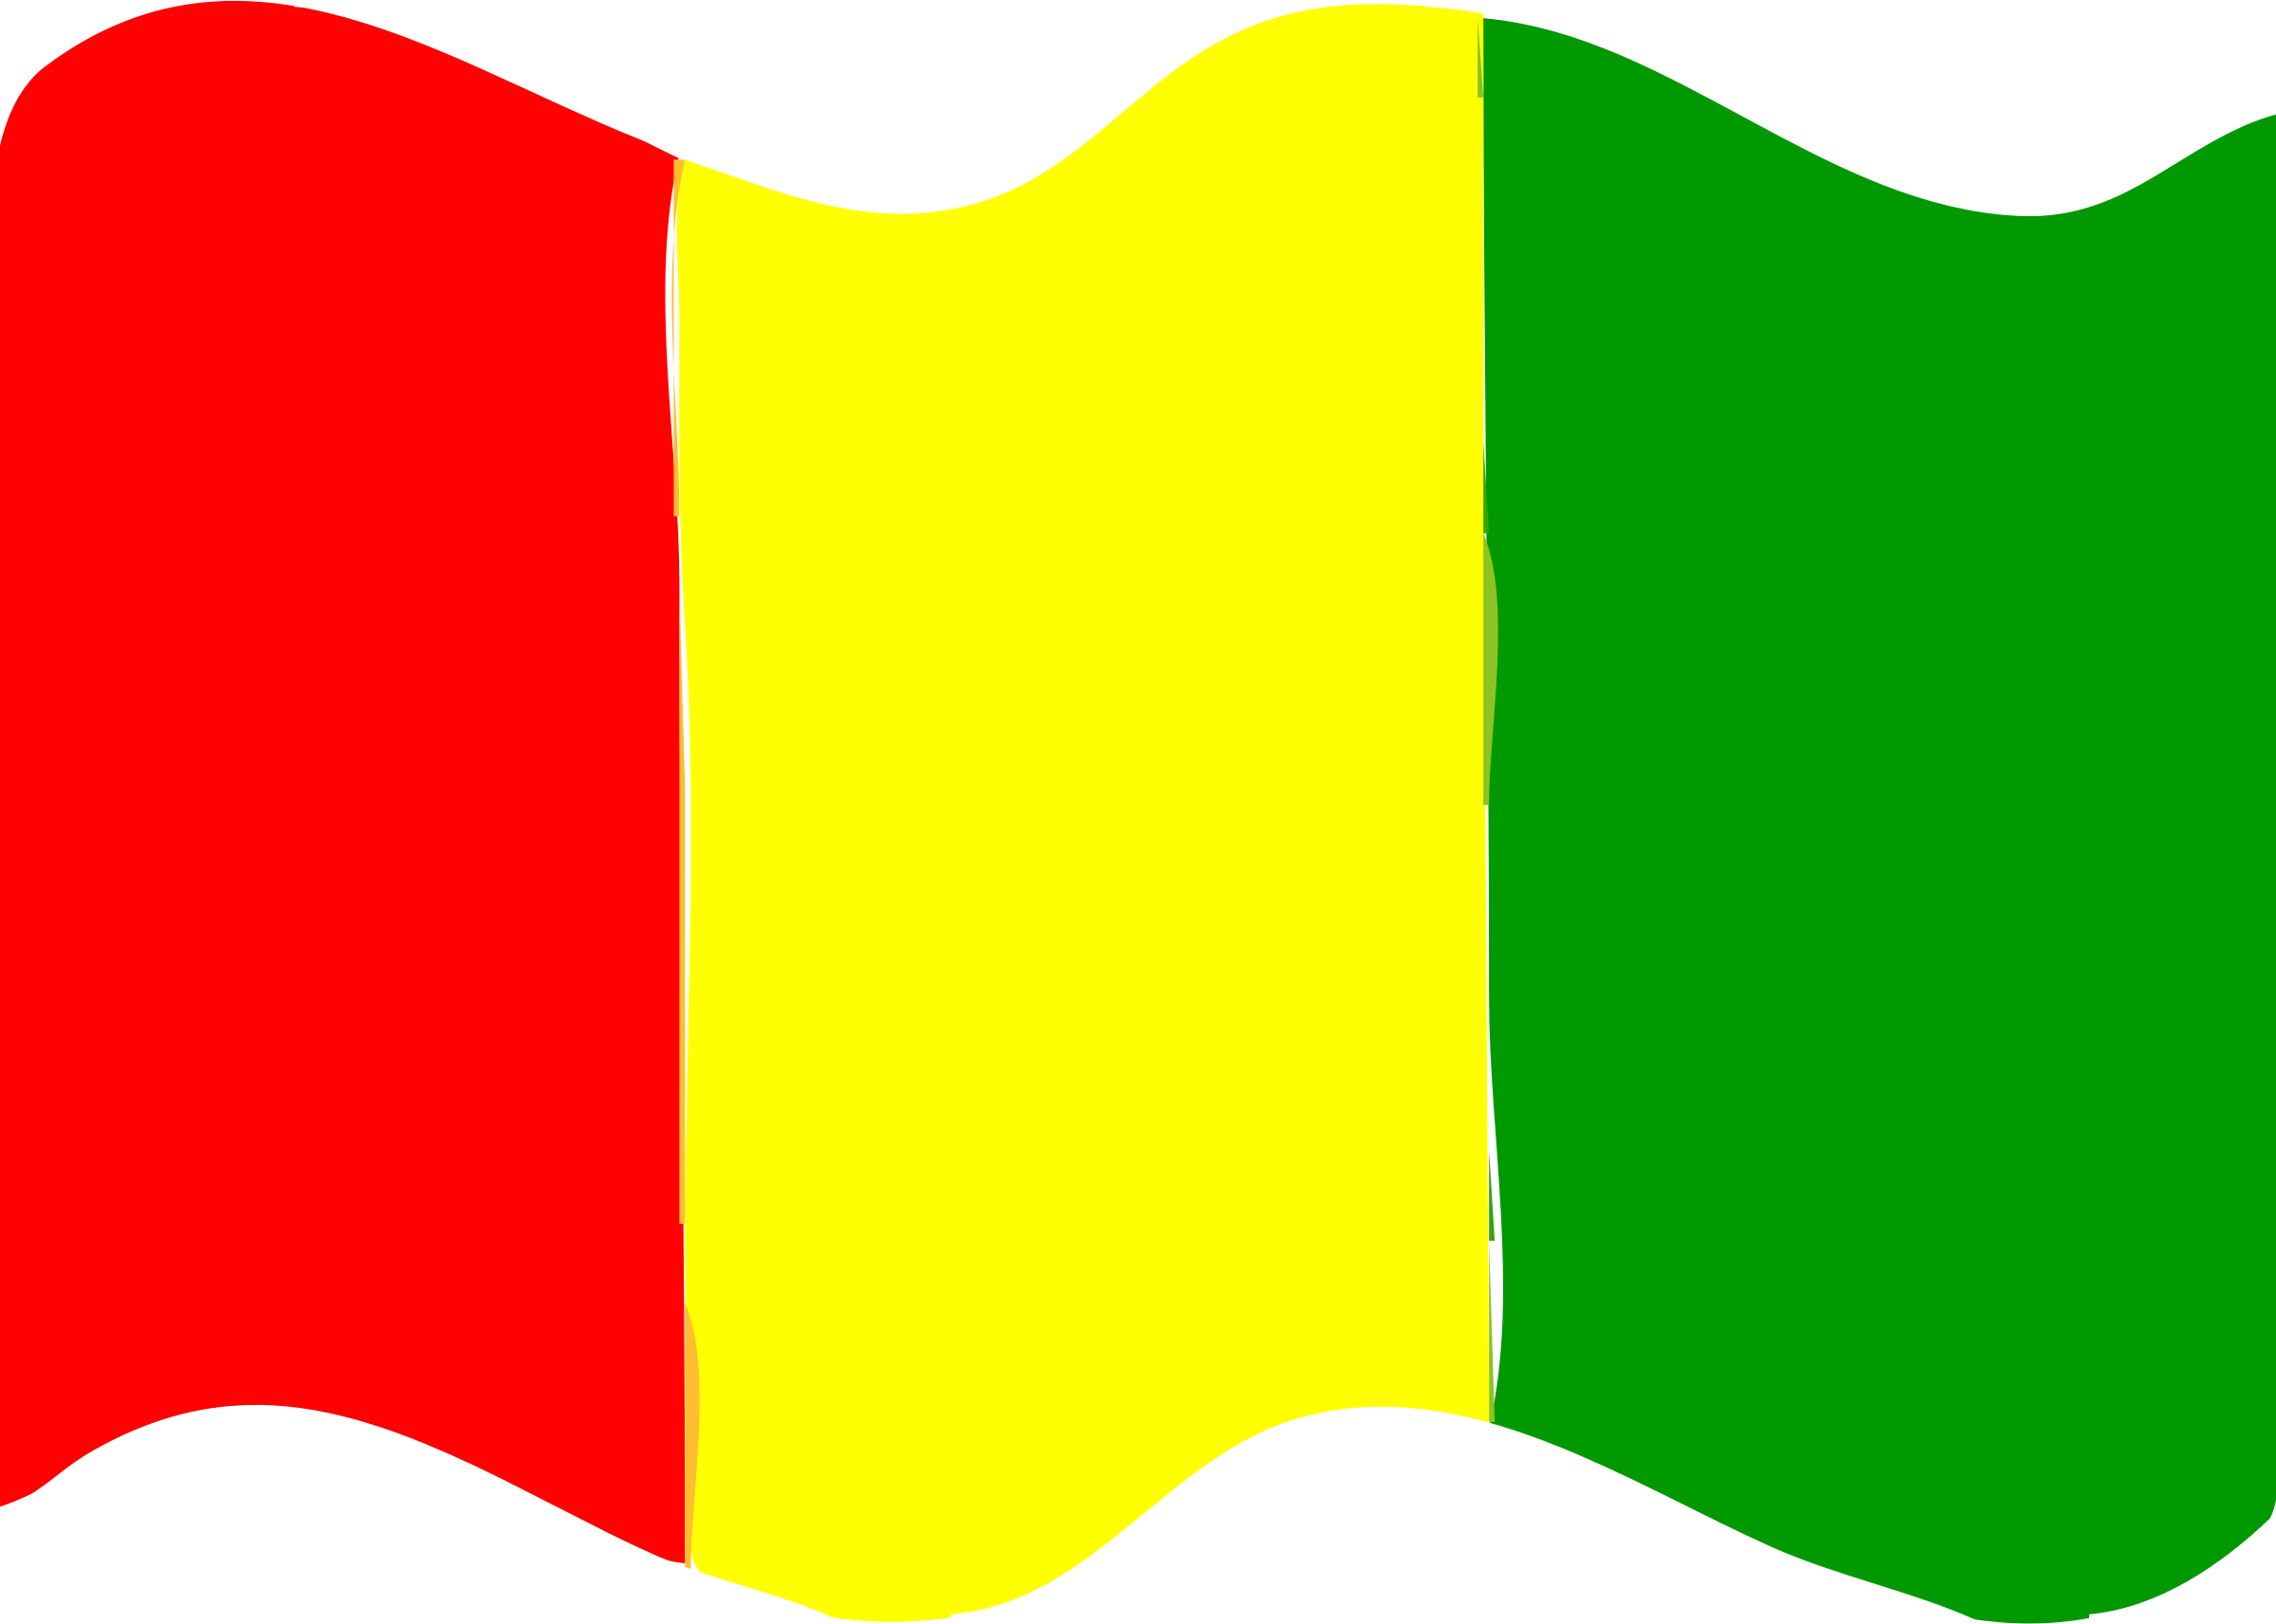 Flag of Guinea wave by Joesph